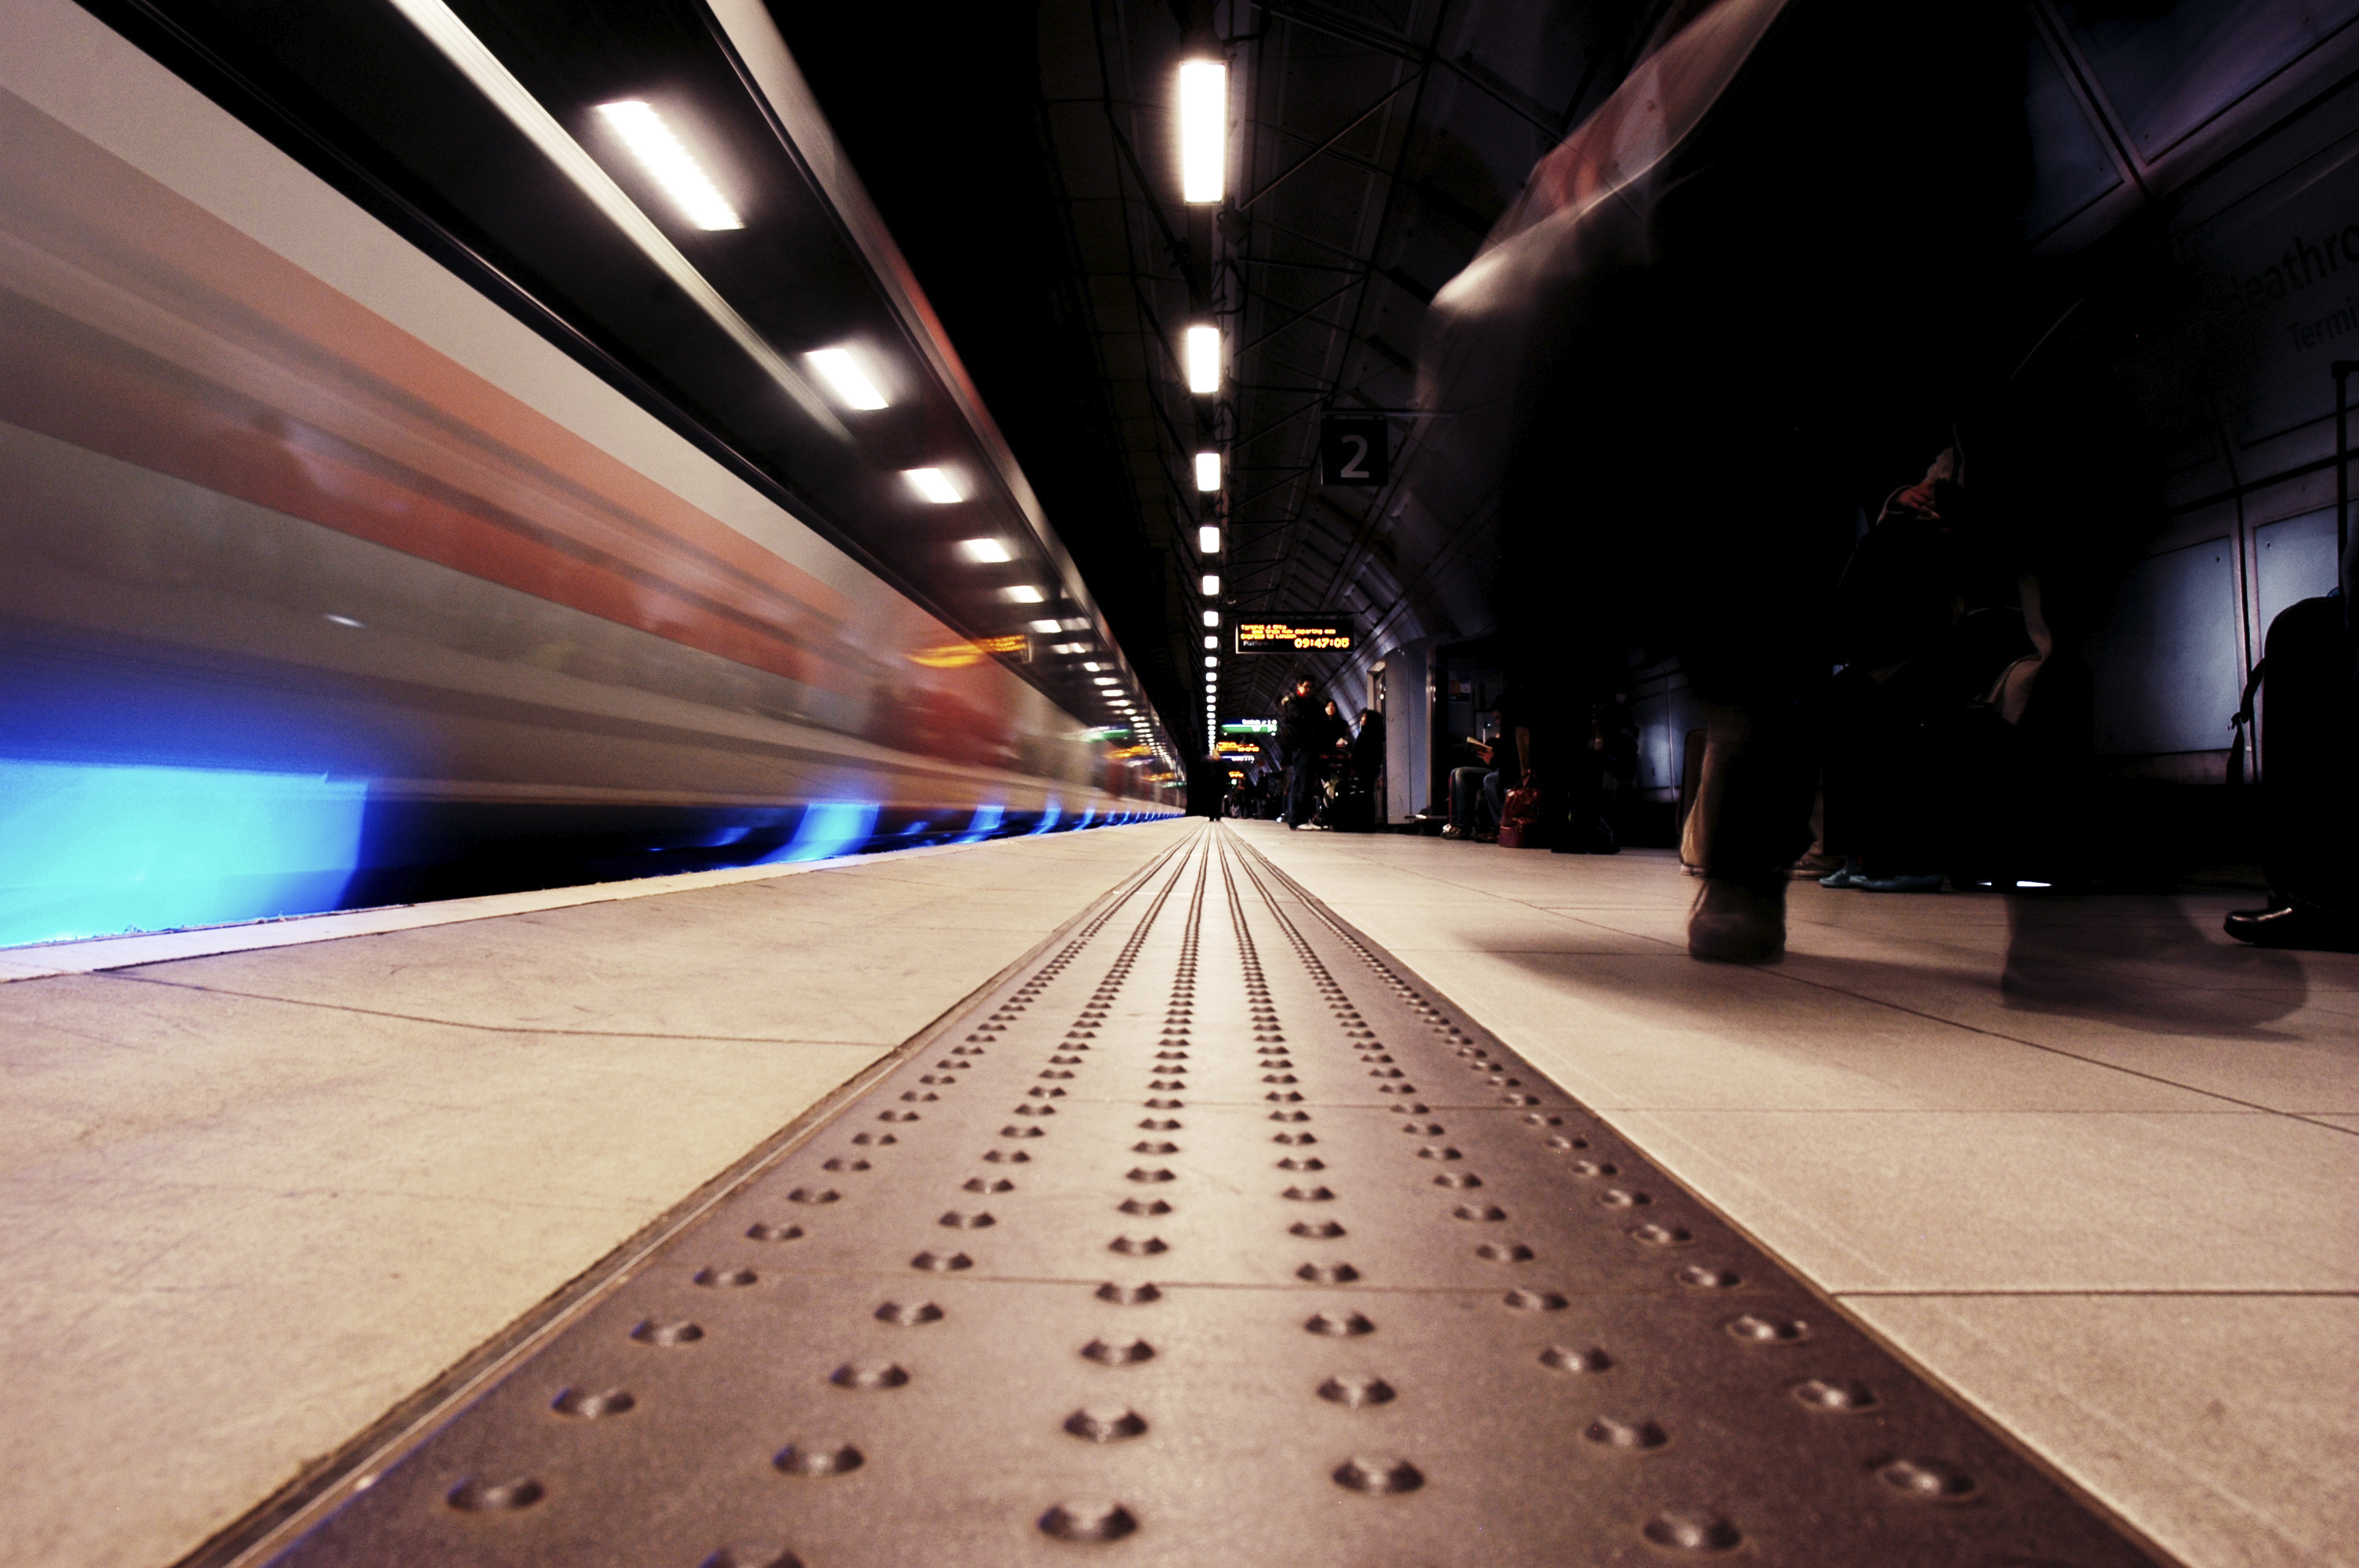 Moving train on a London underground platform